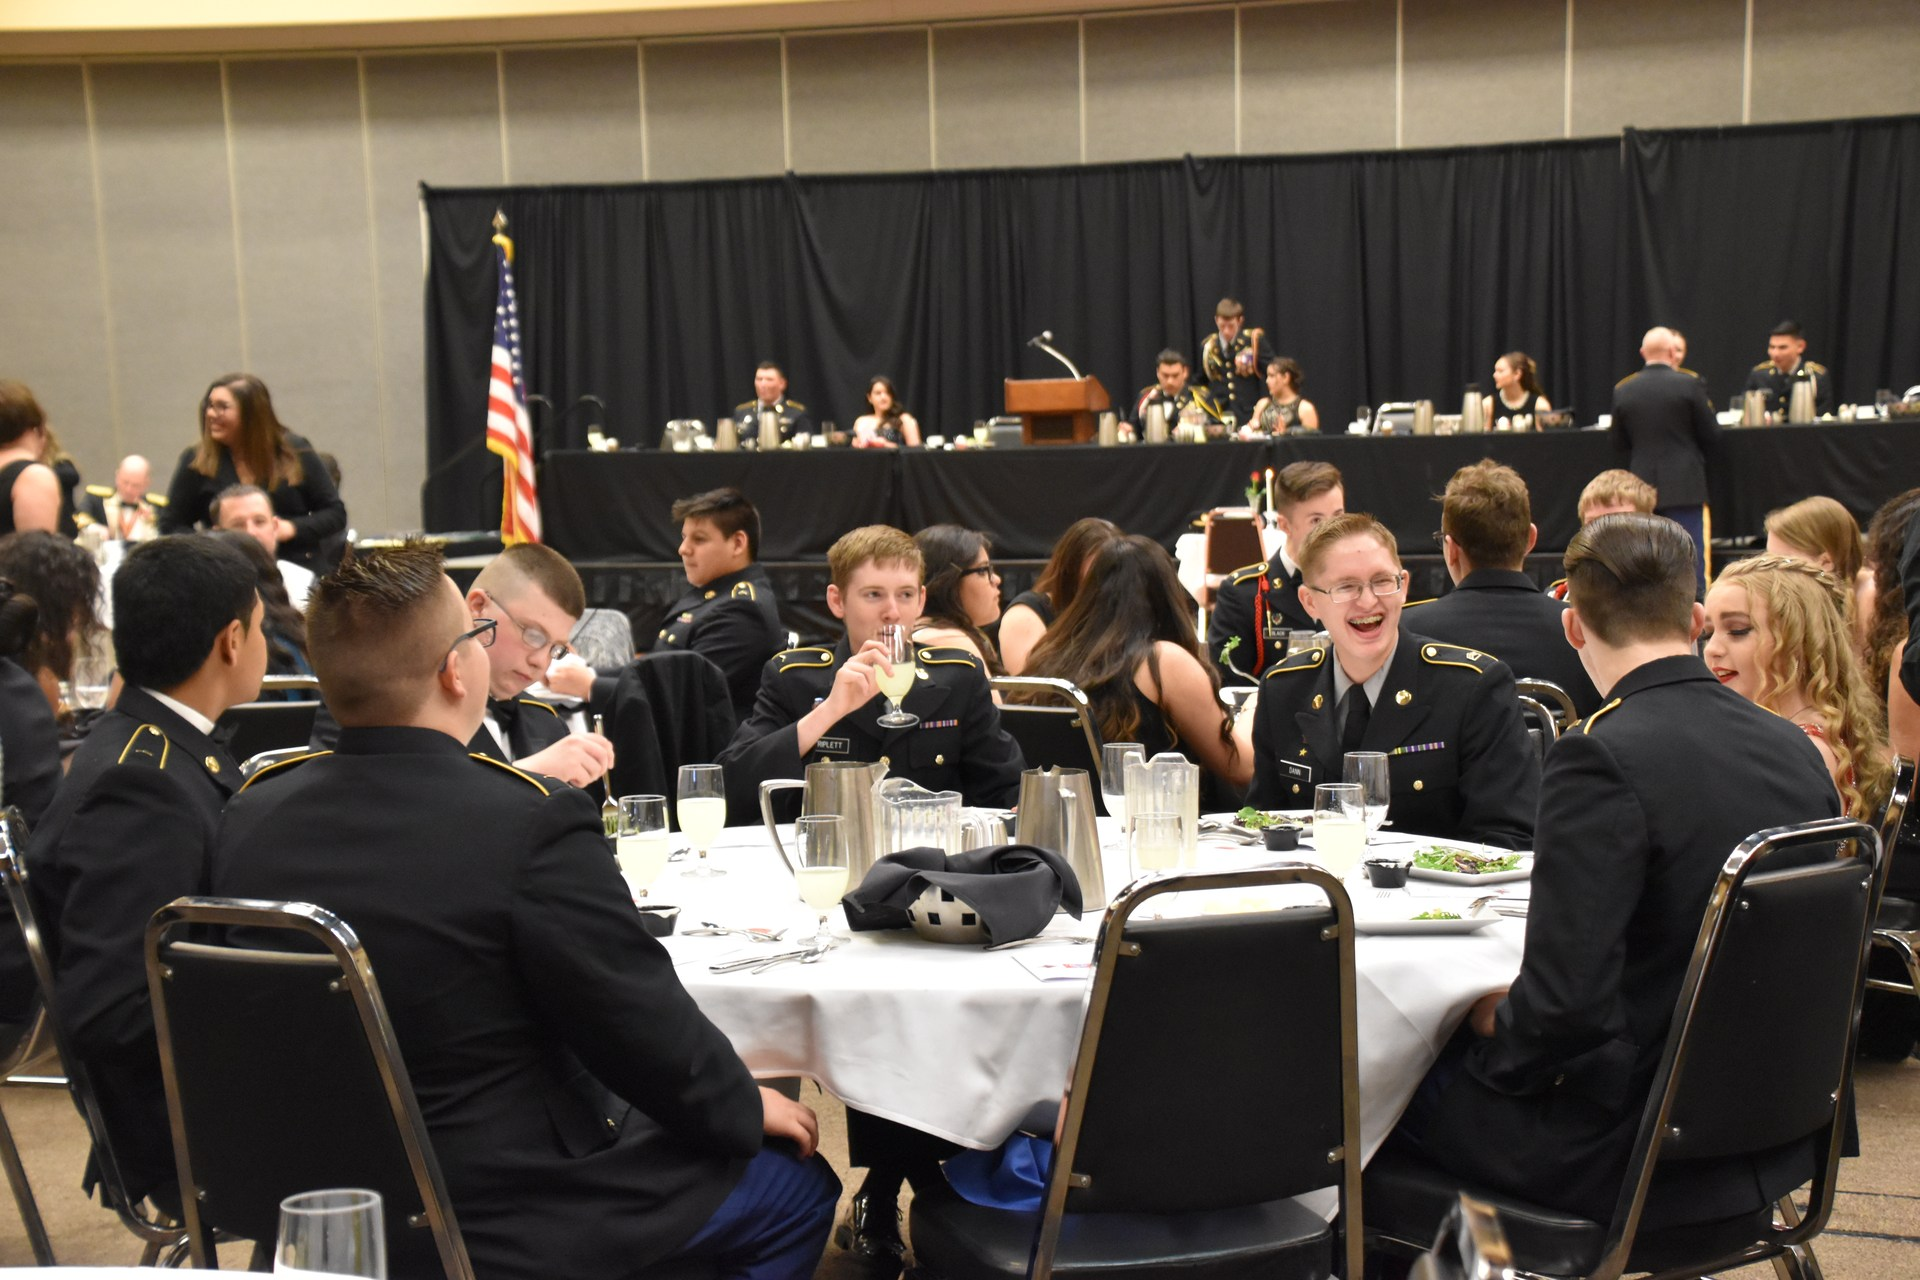 Table of East Valley JROTC members chatting at dinner.